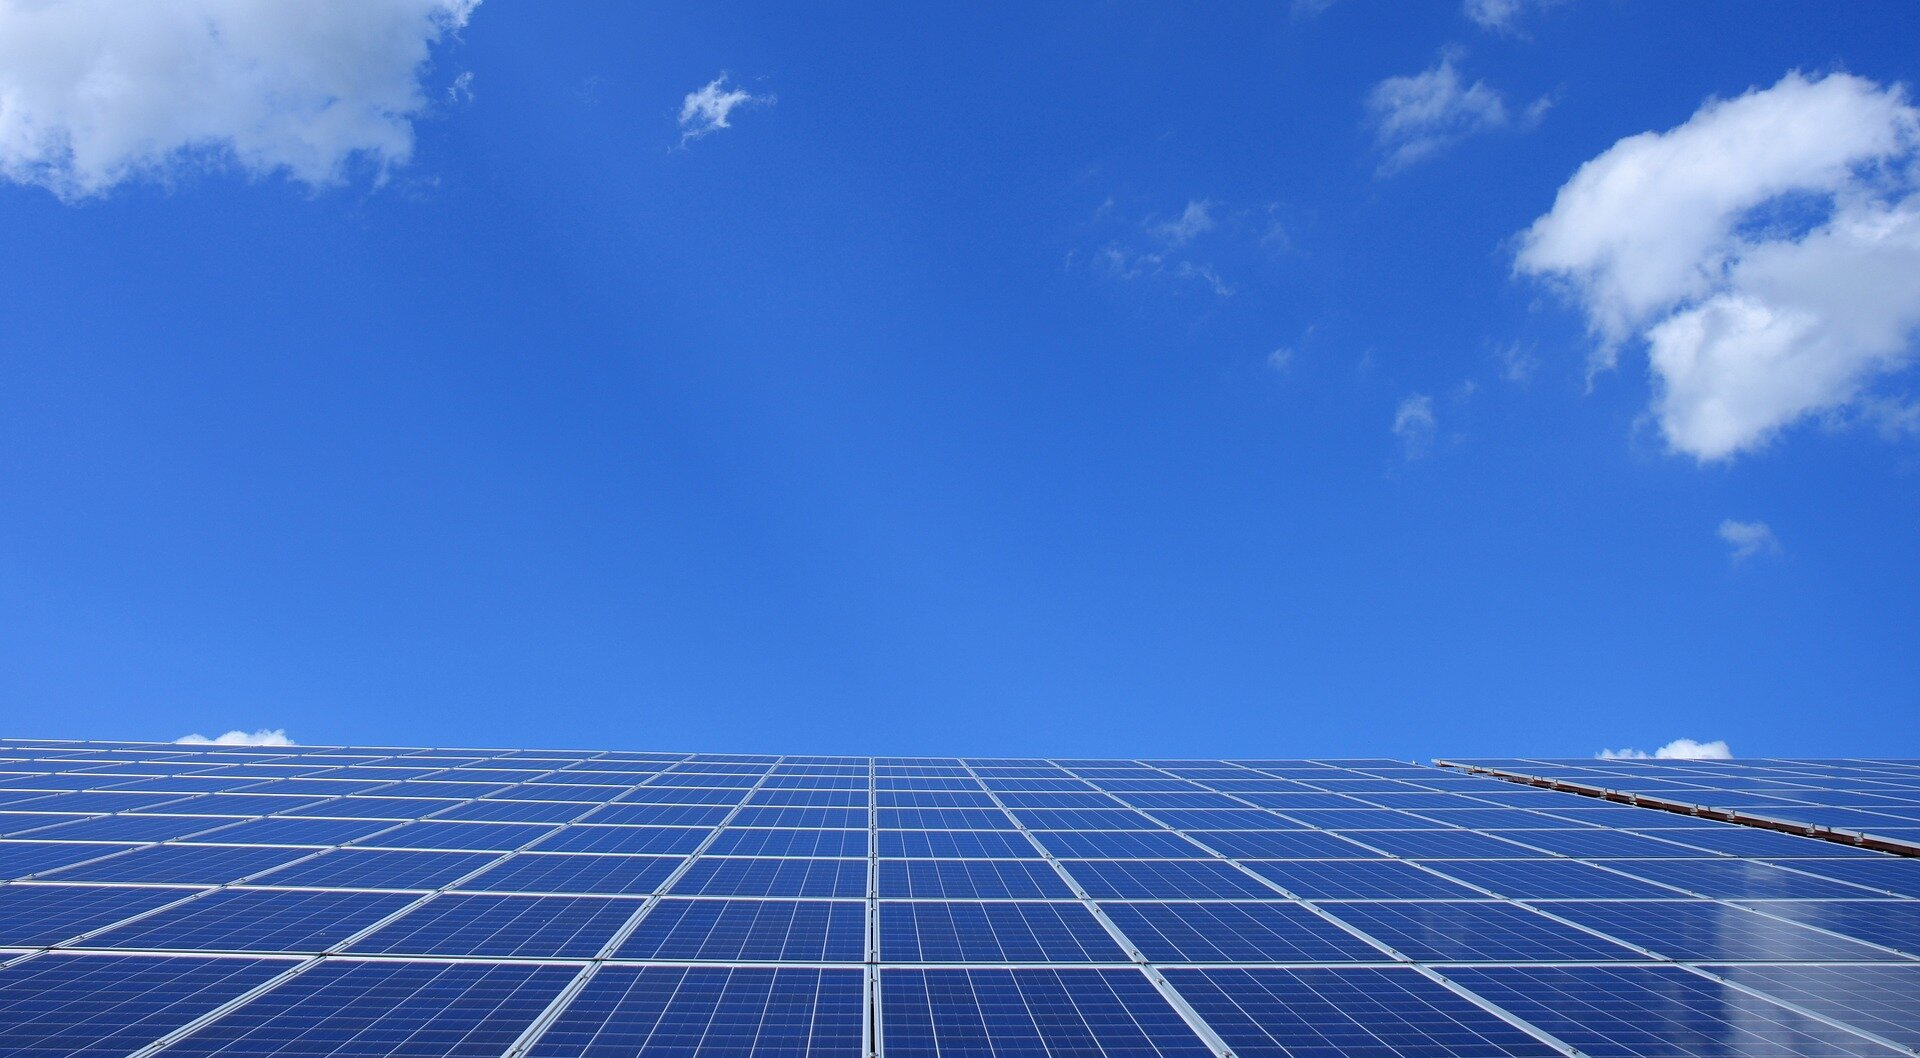 Silicon-based solar panels, first developed in the 1950s, are still evolving by virtue of pioneering new research into the high temperature stability of Silicon